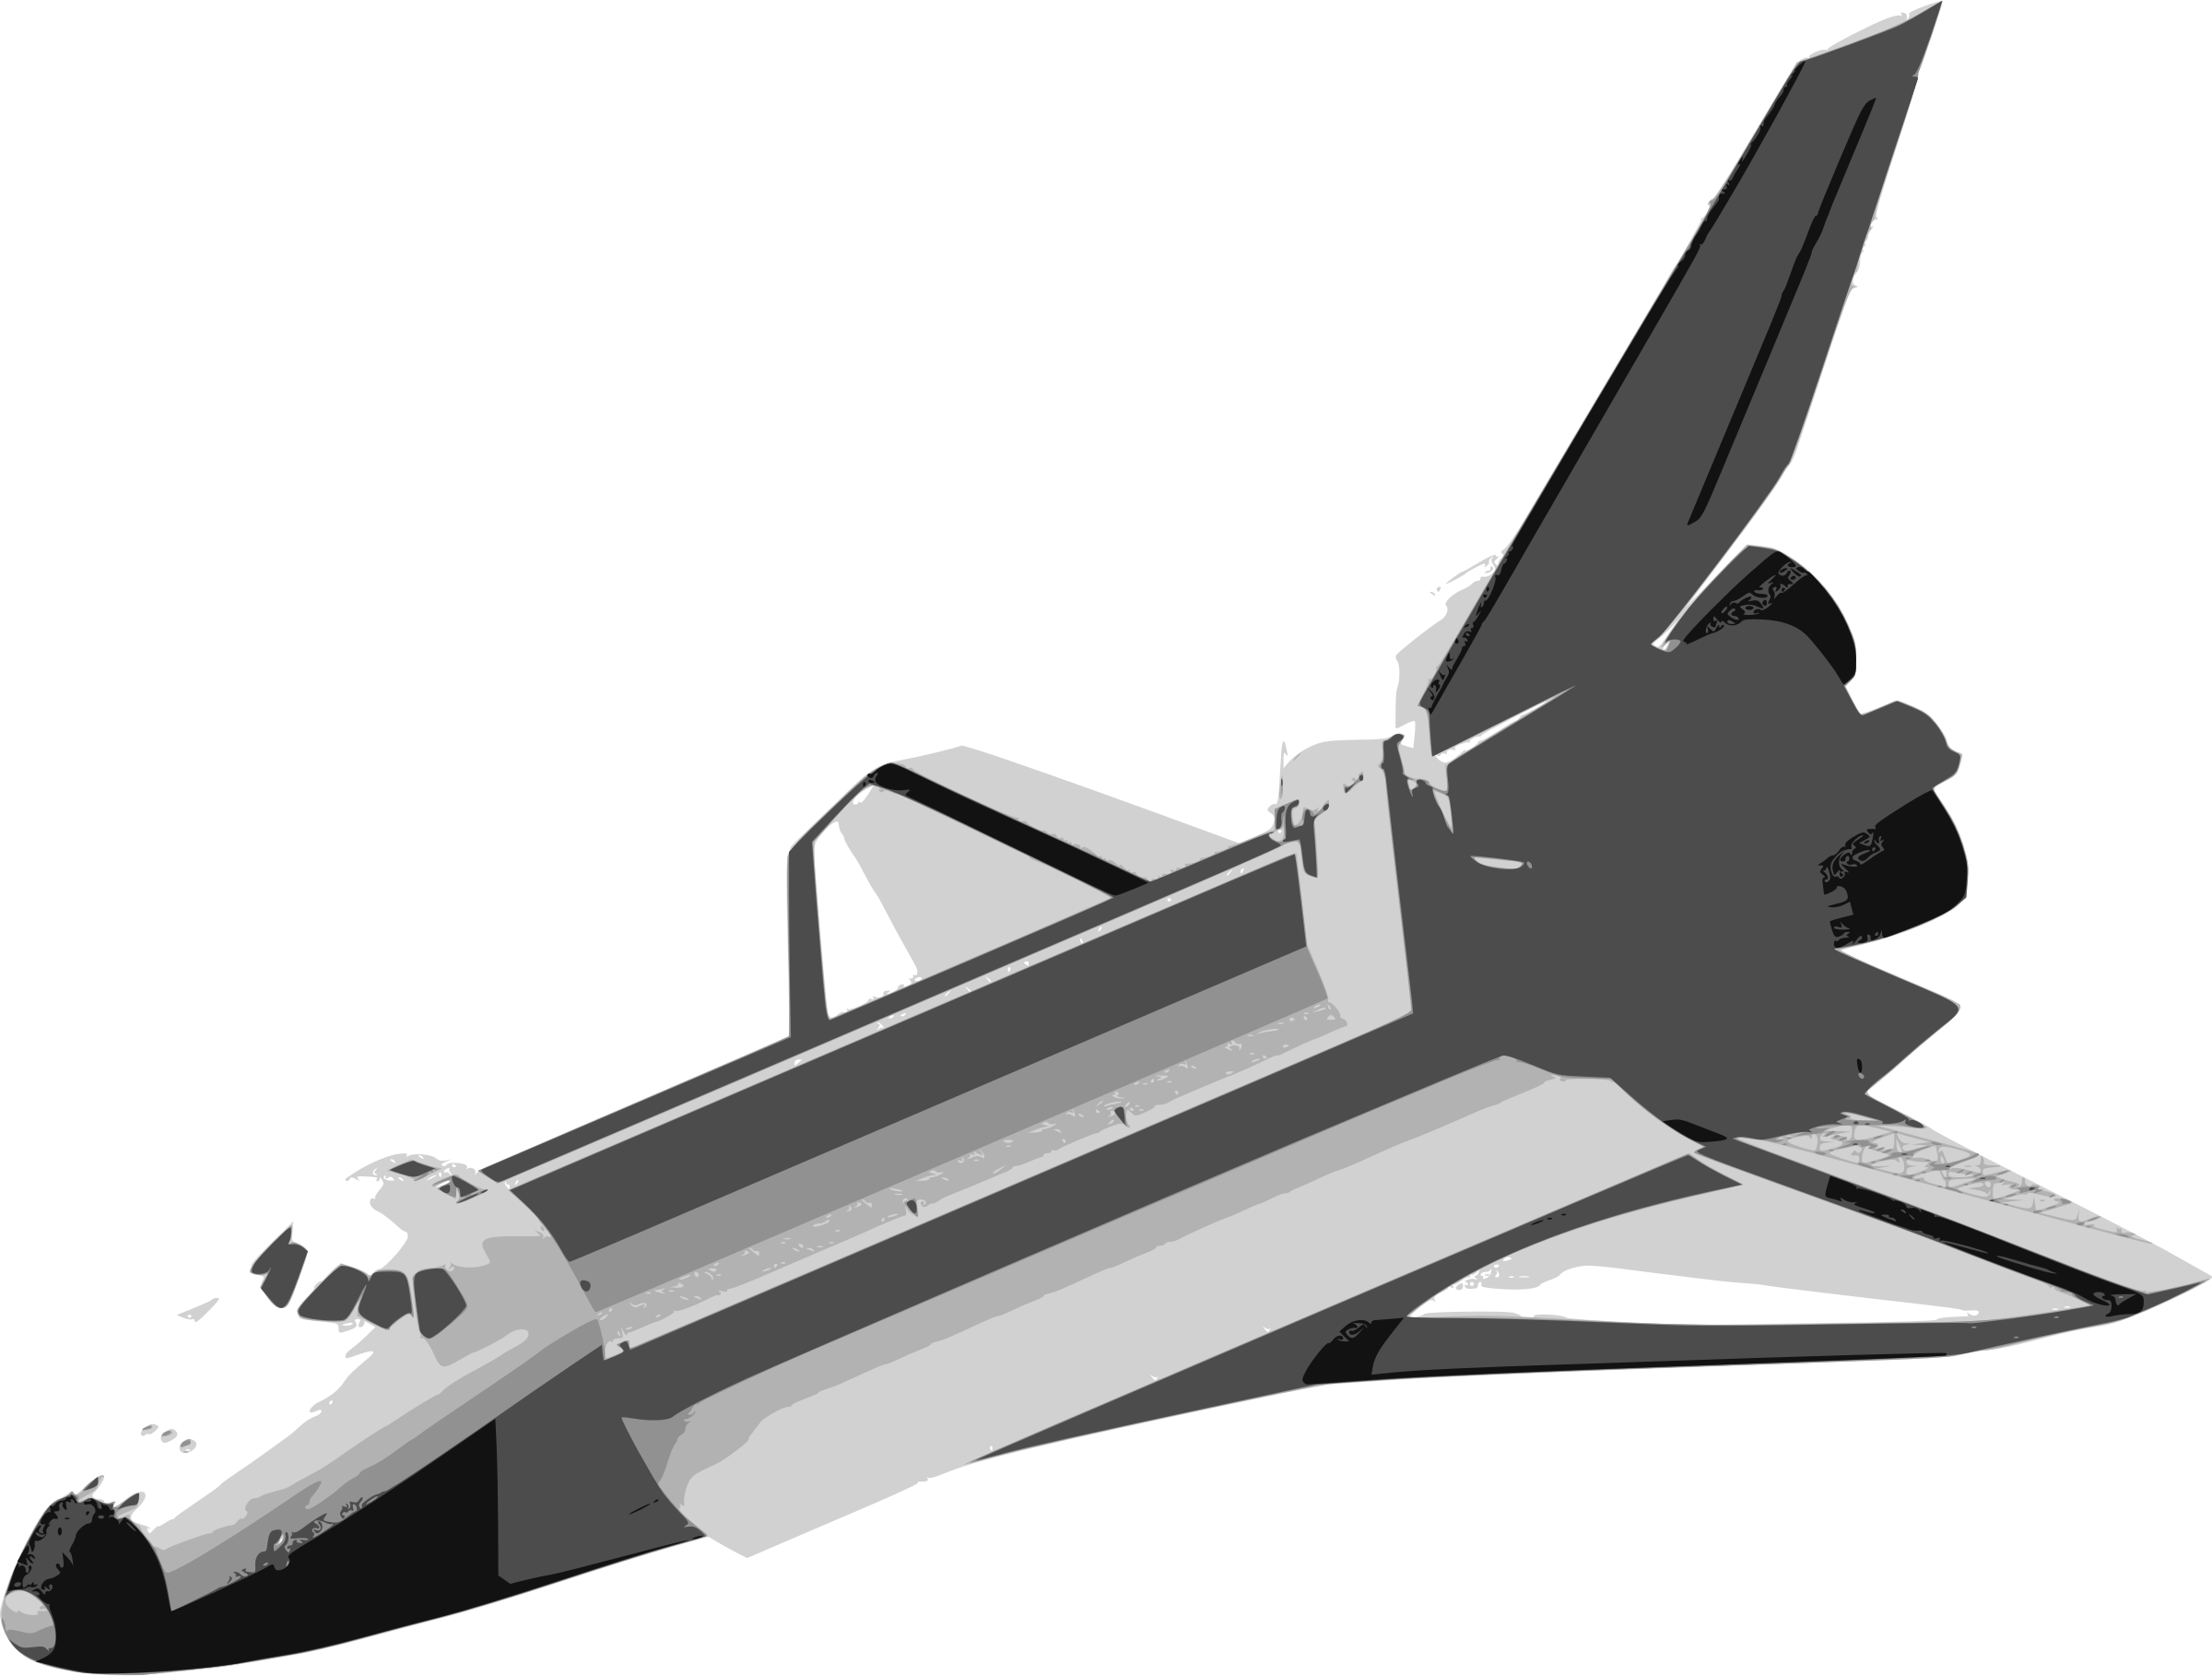 Simple Shuttle by j4p4n